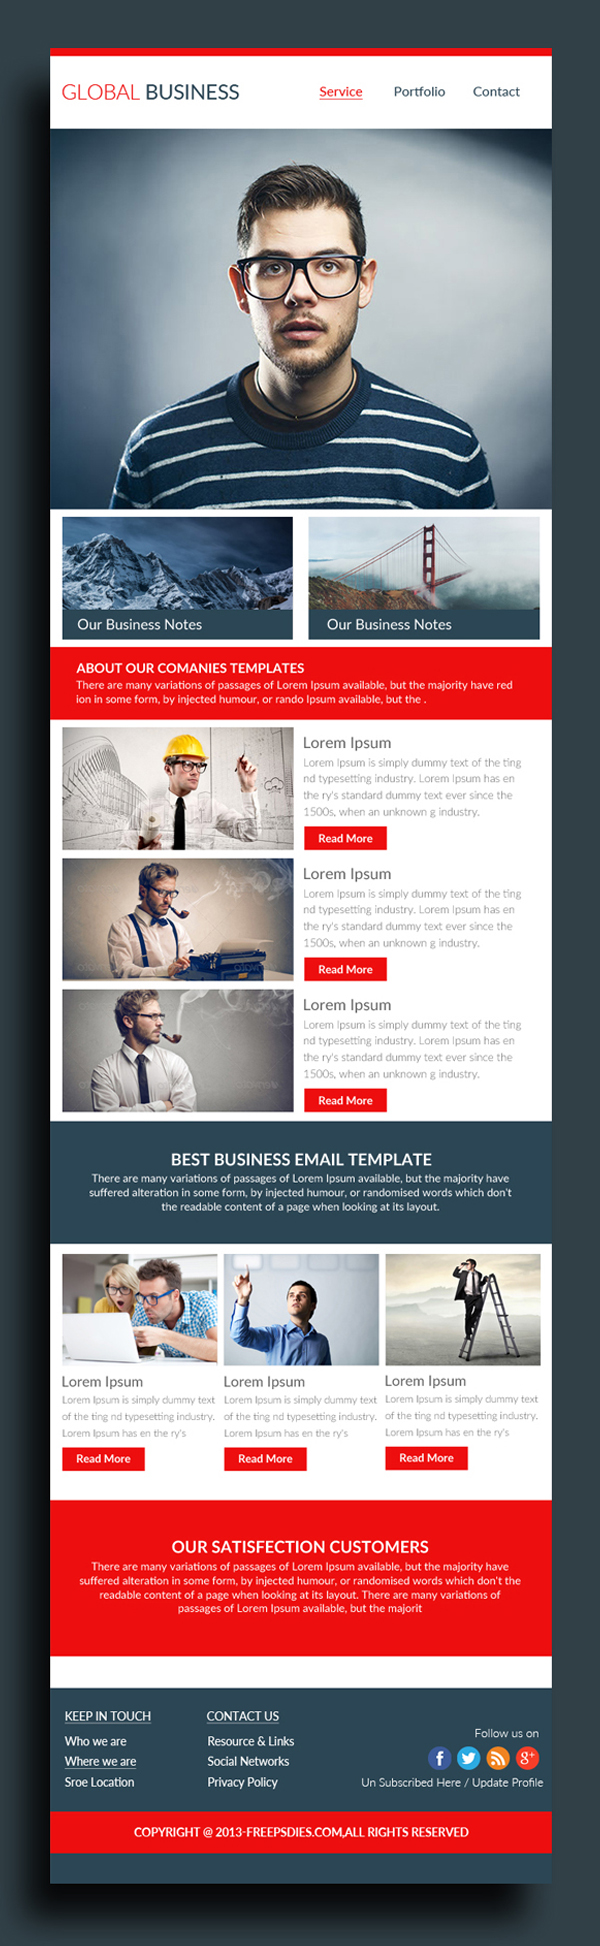 Free Business Email Template PSD